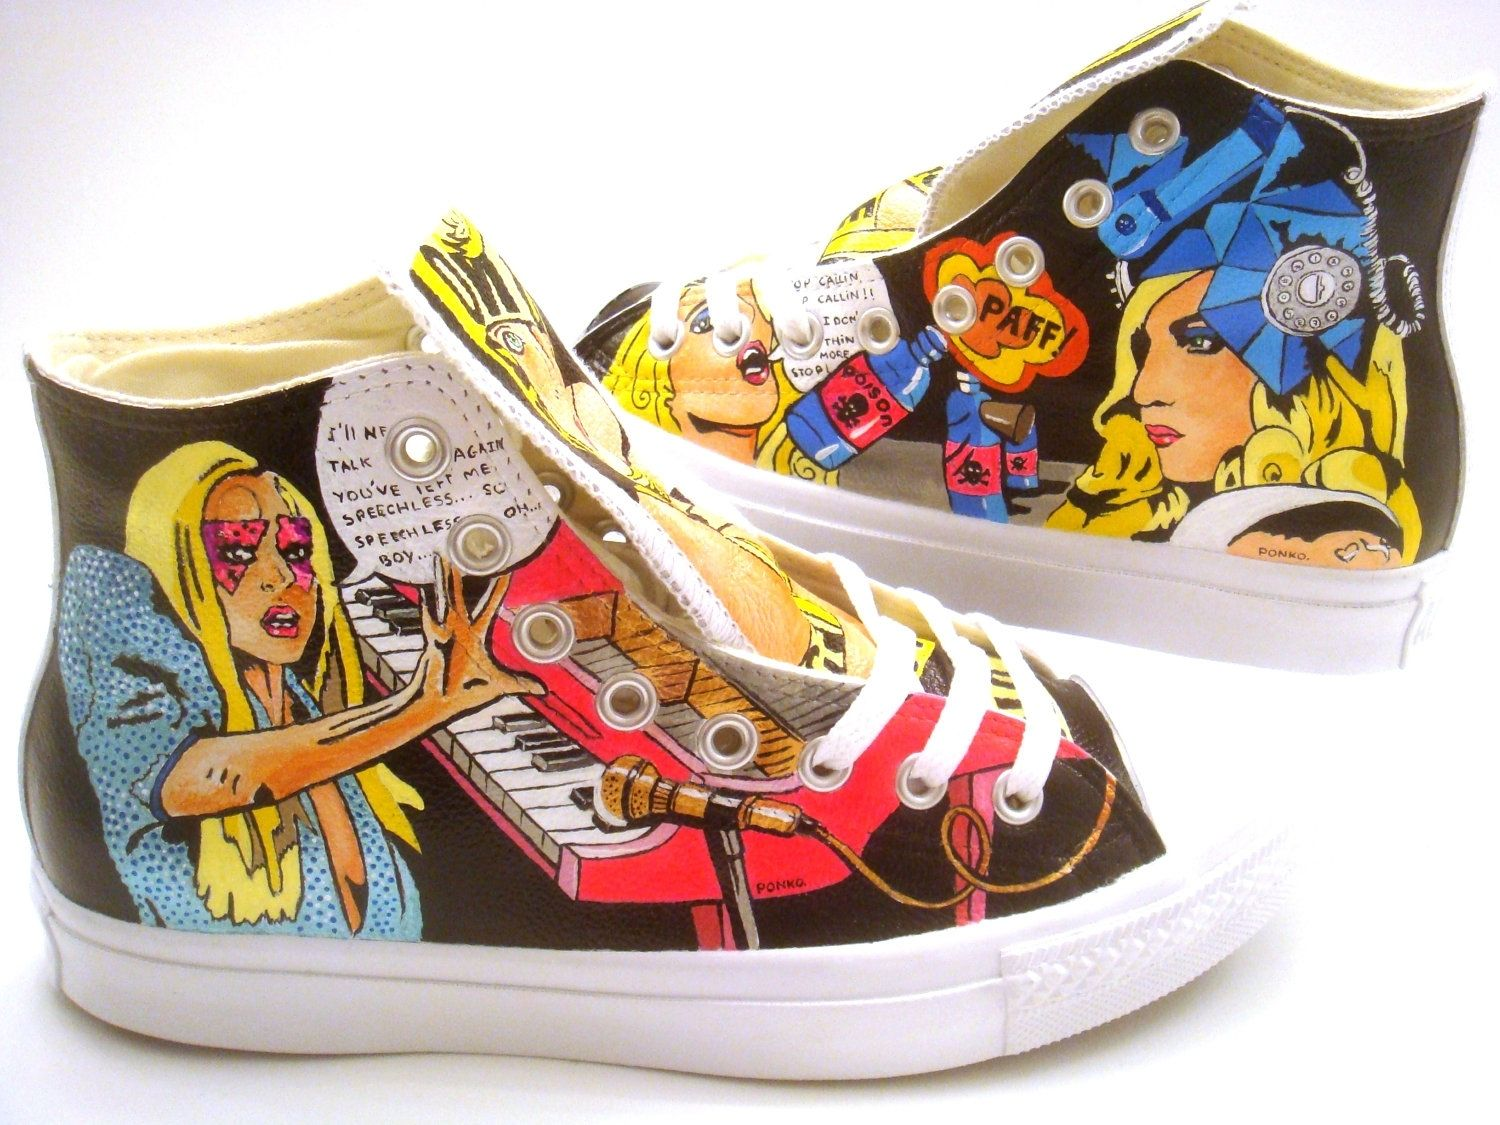 Hand Made Lady Gaga Converse Hand Painted By PONKO WORLD